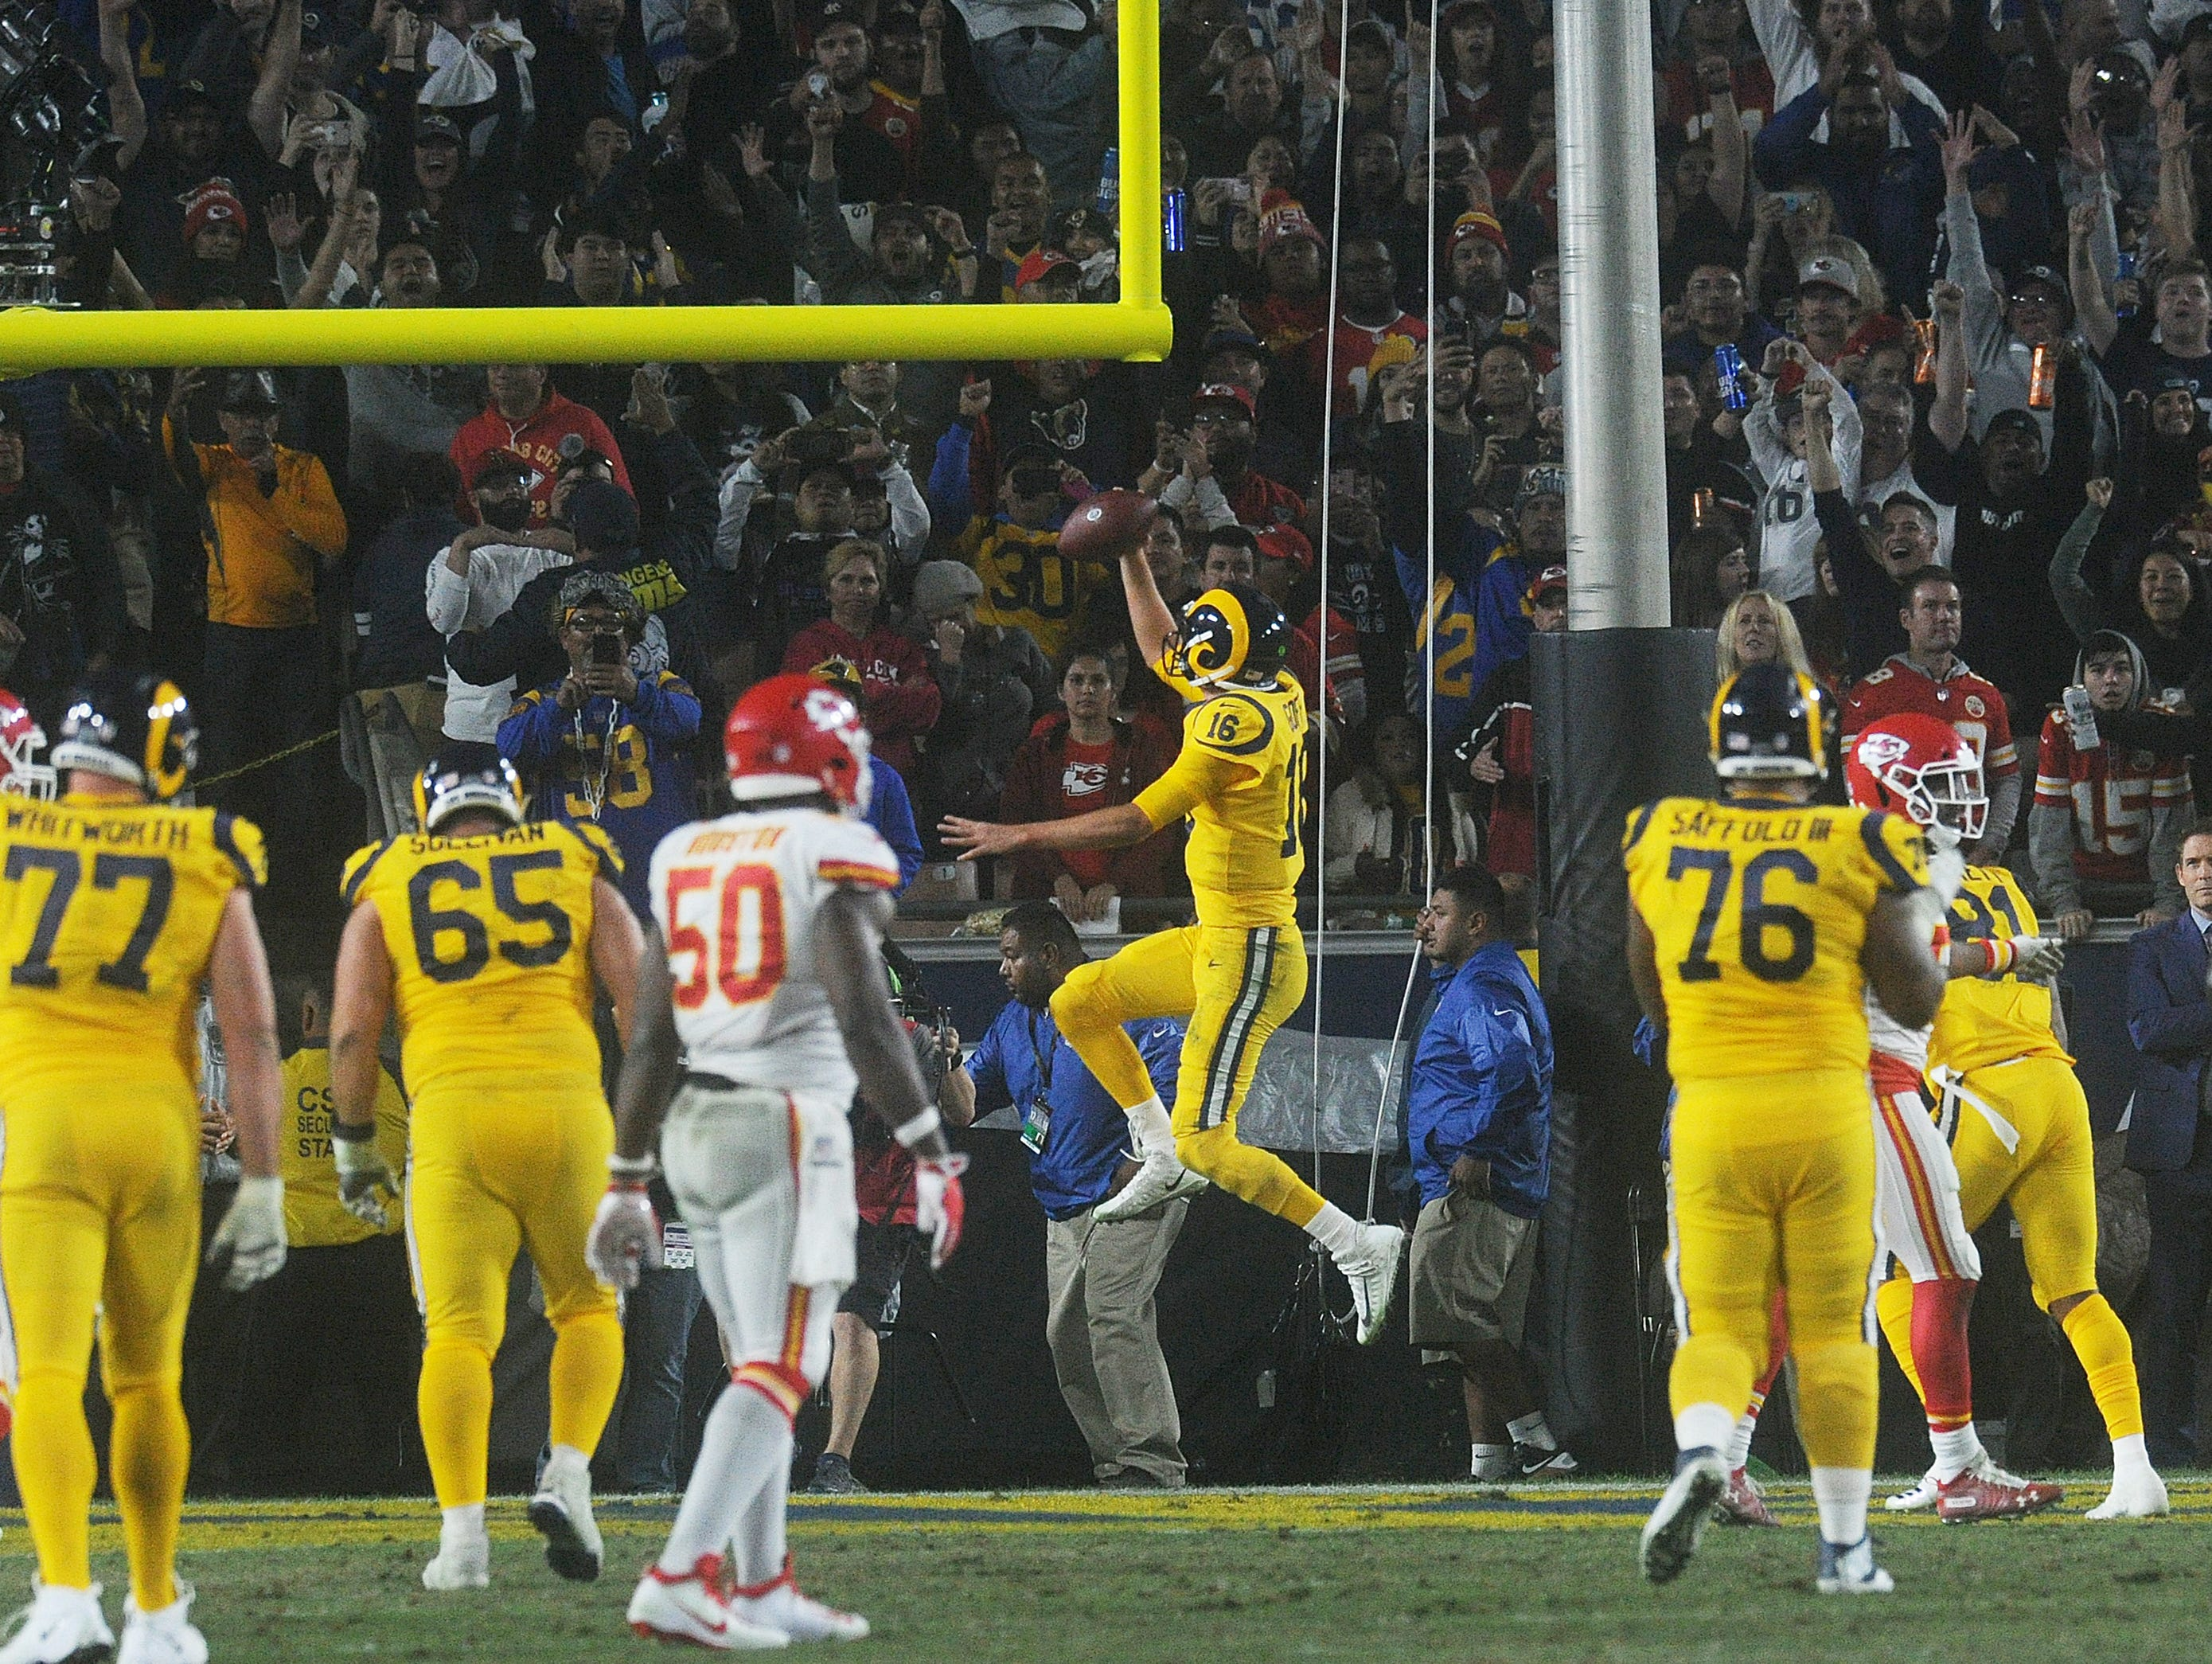 Rams quarterback Jared Goff scores a touchdown on a touchdown run. Goff completed 31 of 49 passes for 413 yards and four touchdowns in an epic 54-51 battle against the Chiefs on Monday night.